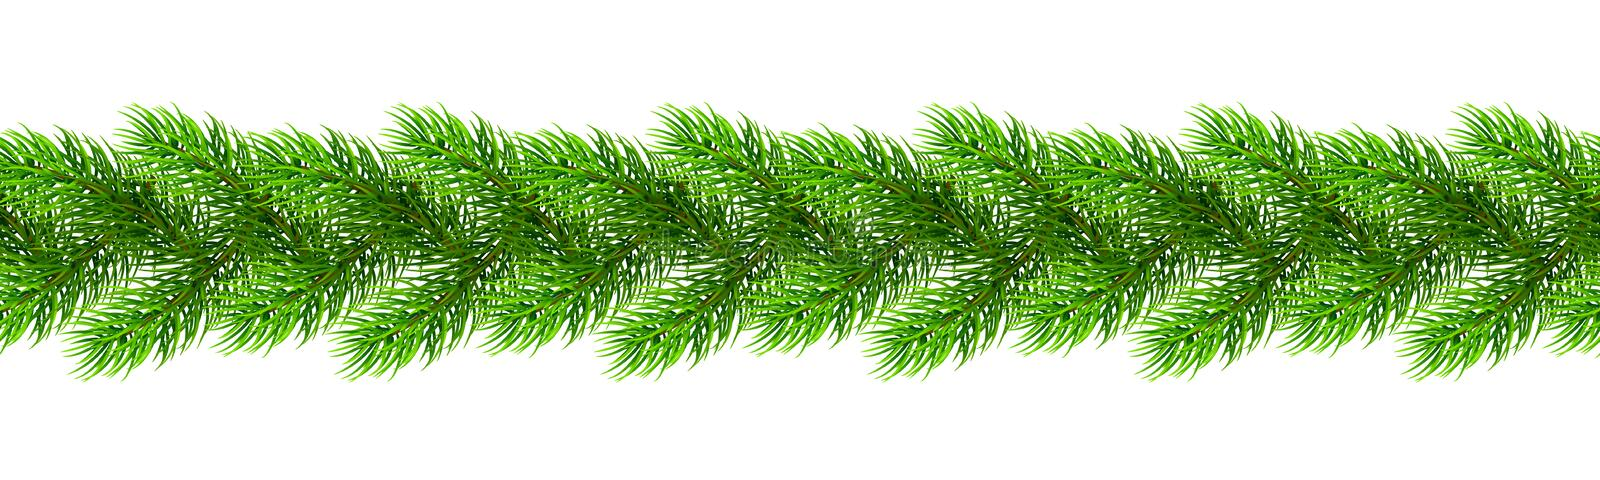 Seamless realistic Christmas borders from fir tree branches. Template for a banner, poster, invitation. Vector illustration for your design vector illustration